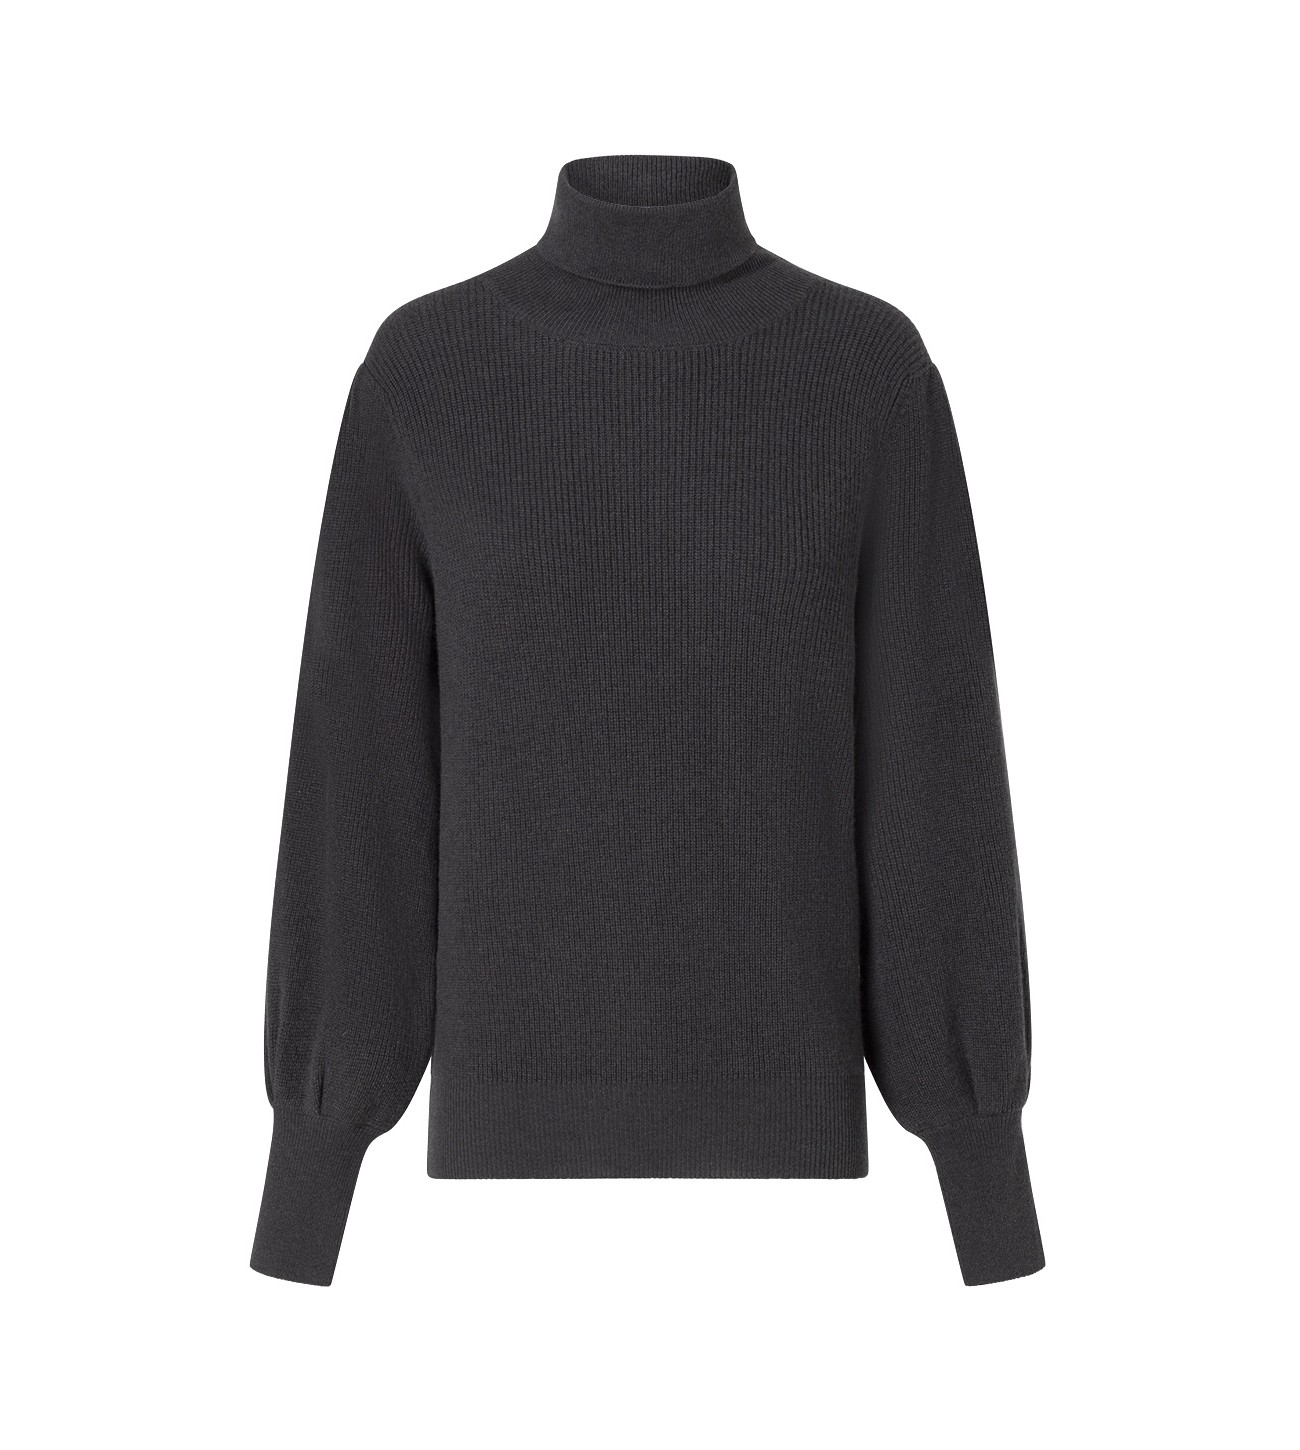 PESERICO_TURTLE_NECK_SWEATER_WITH_BALLOON_SLEEVES_MARIONA_FASHION_CLOTHING_WOMAN_SHOP_ONLINE_S99152F12